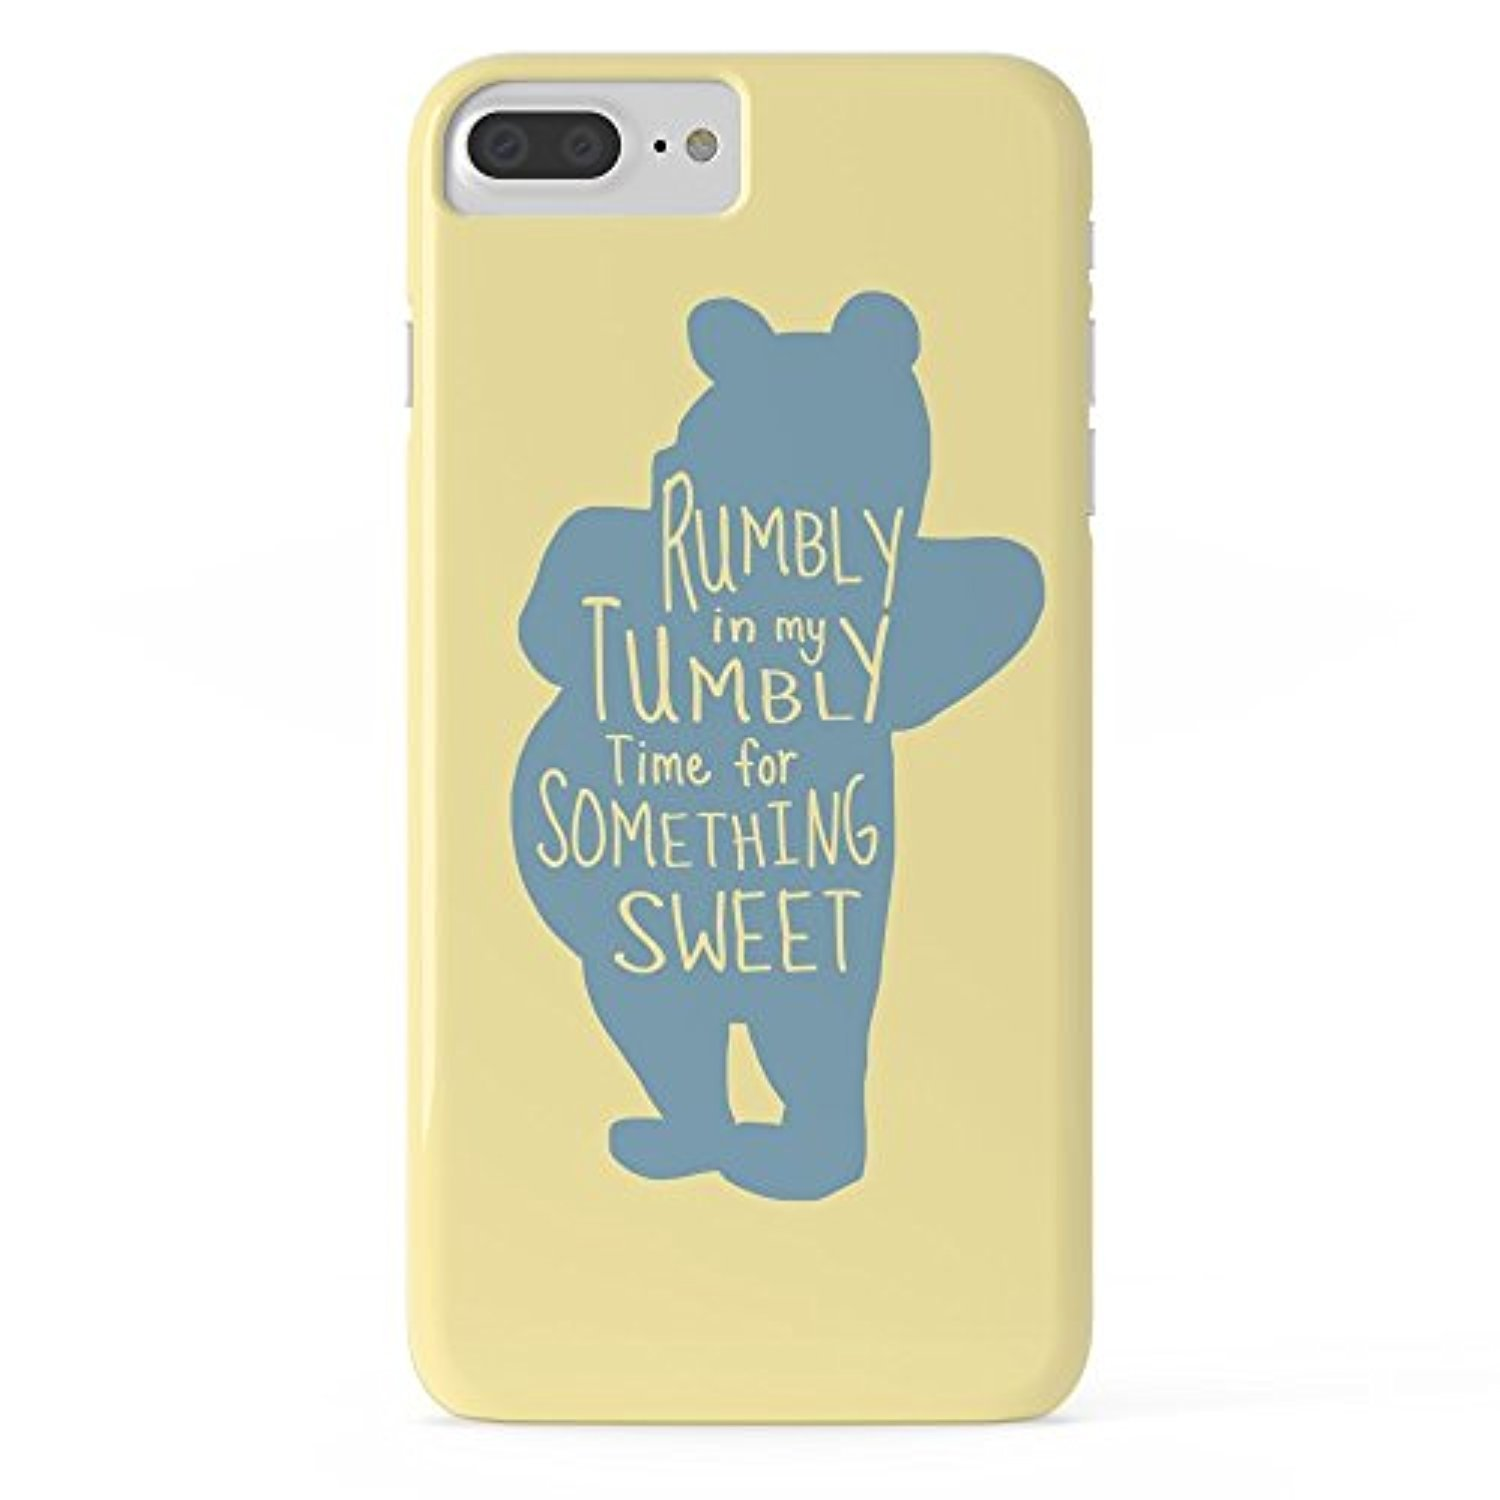 Society6 Rumbly In My Tumbly Time For Something Sweet -